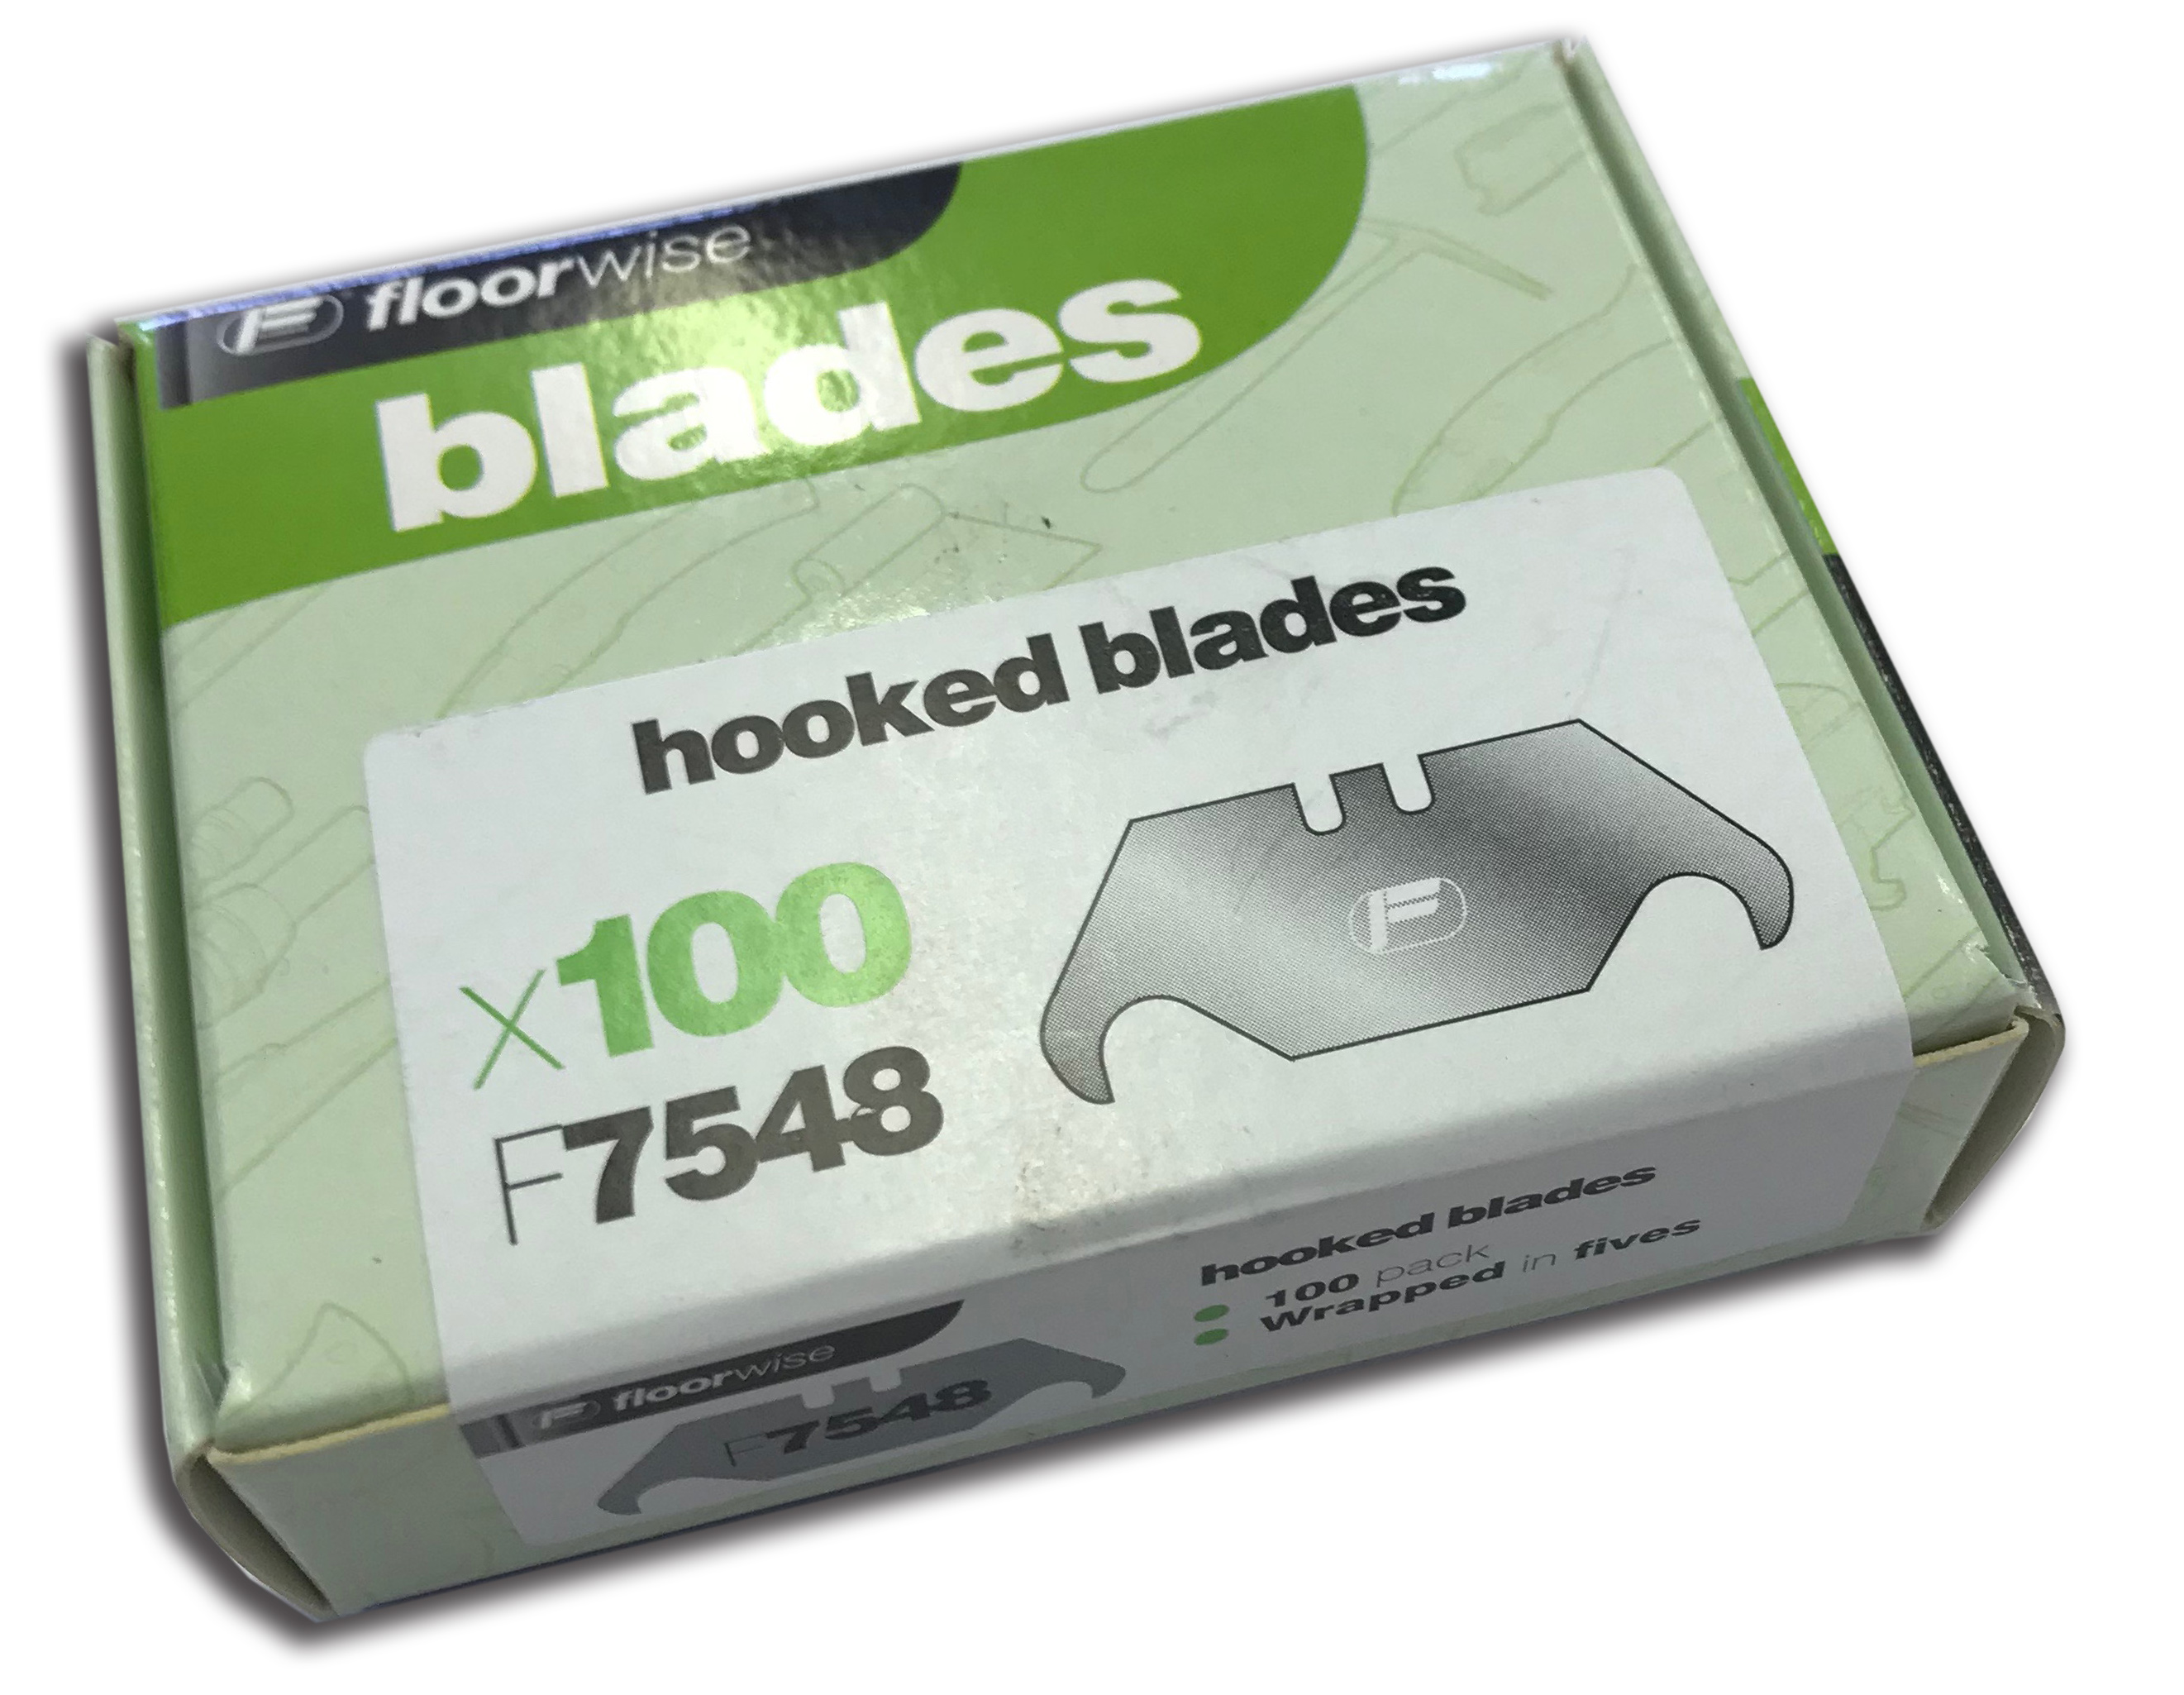 F7548 Hooked Blades